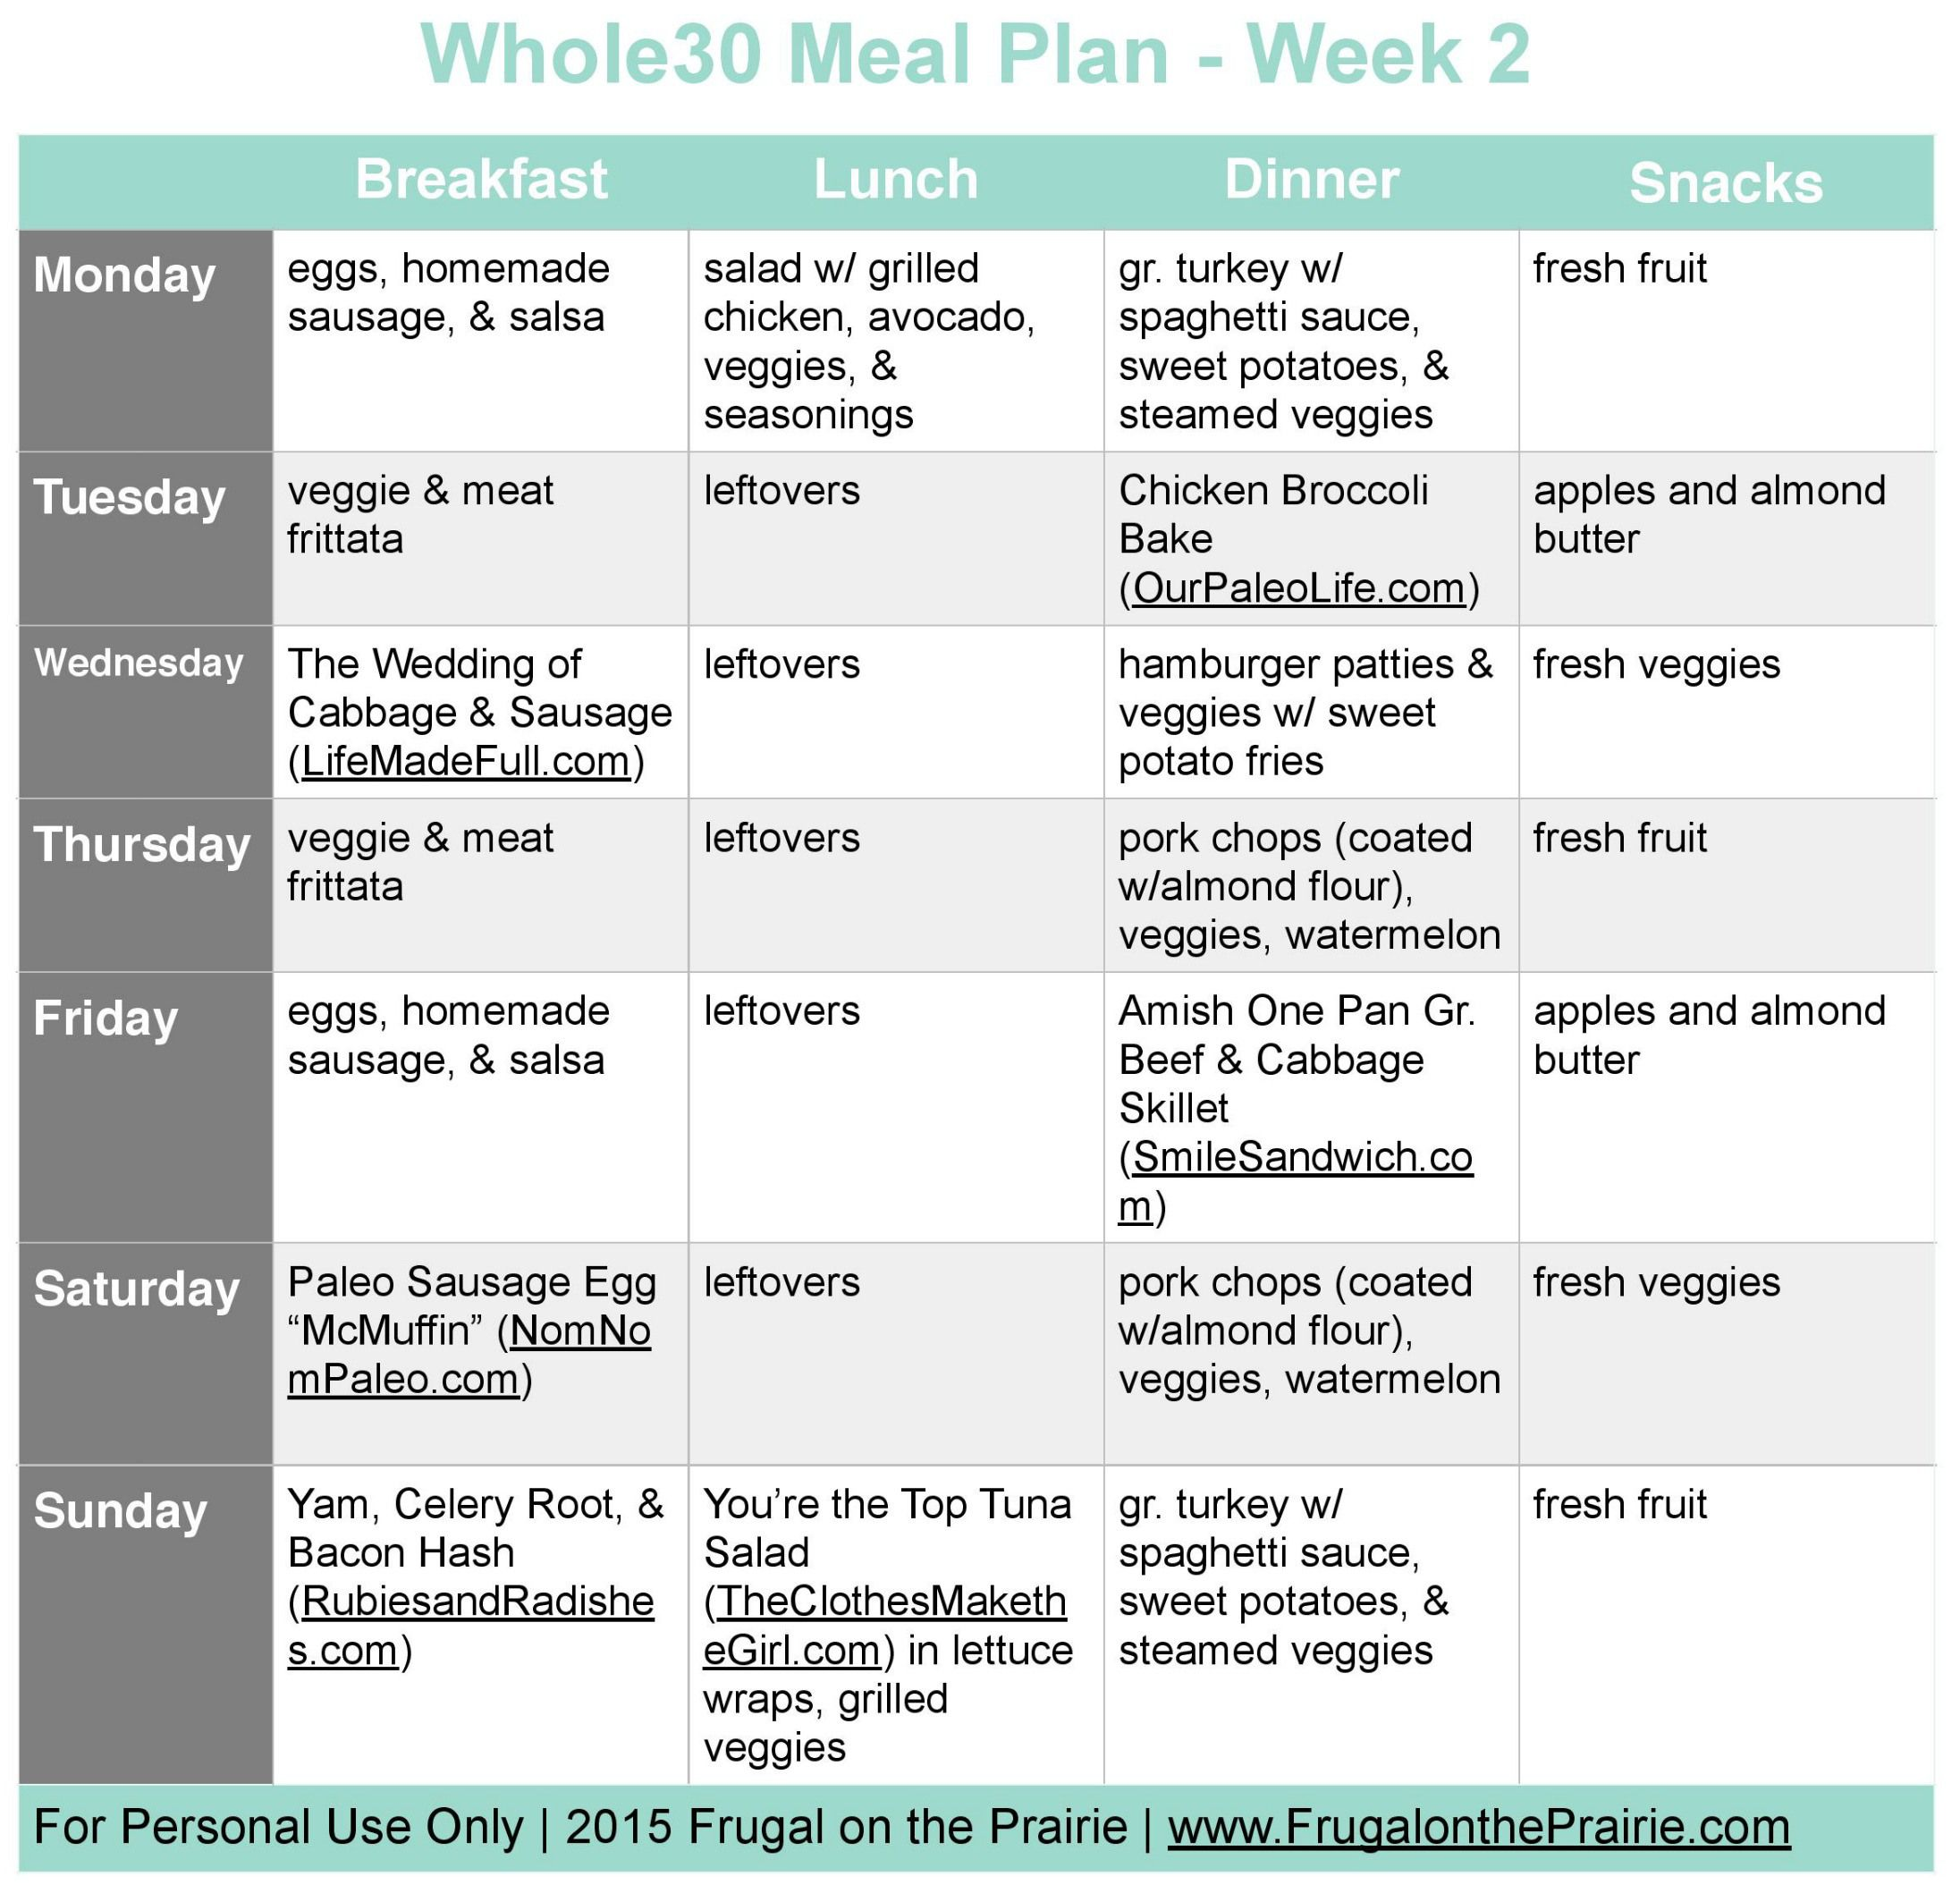 The Busy Person\'s Whole30 Meal Plan - Week 2 | Pinterest | Whole30 ...